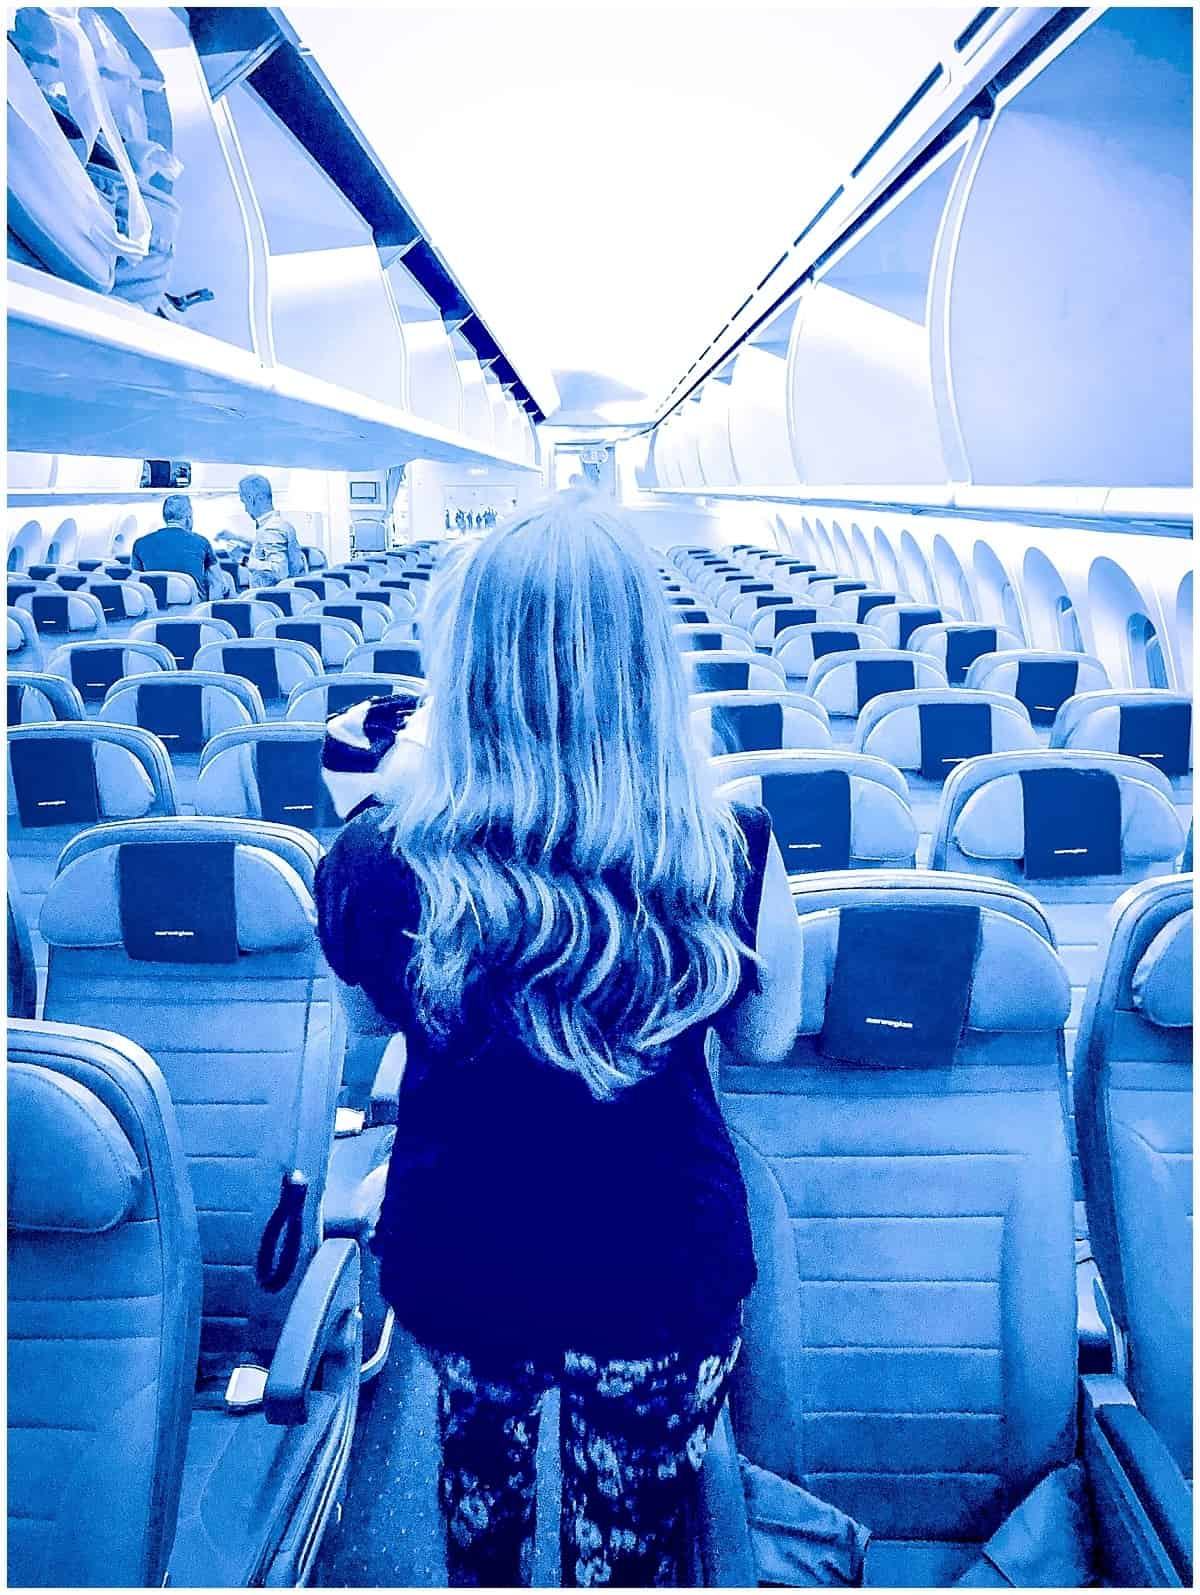 Abigail King walking along aeroplane aisle while boarding plane for a long haul flight